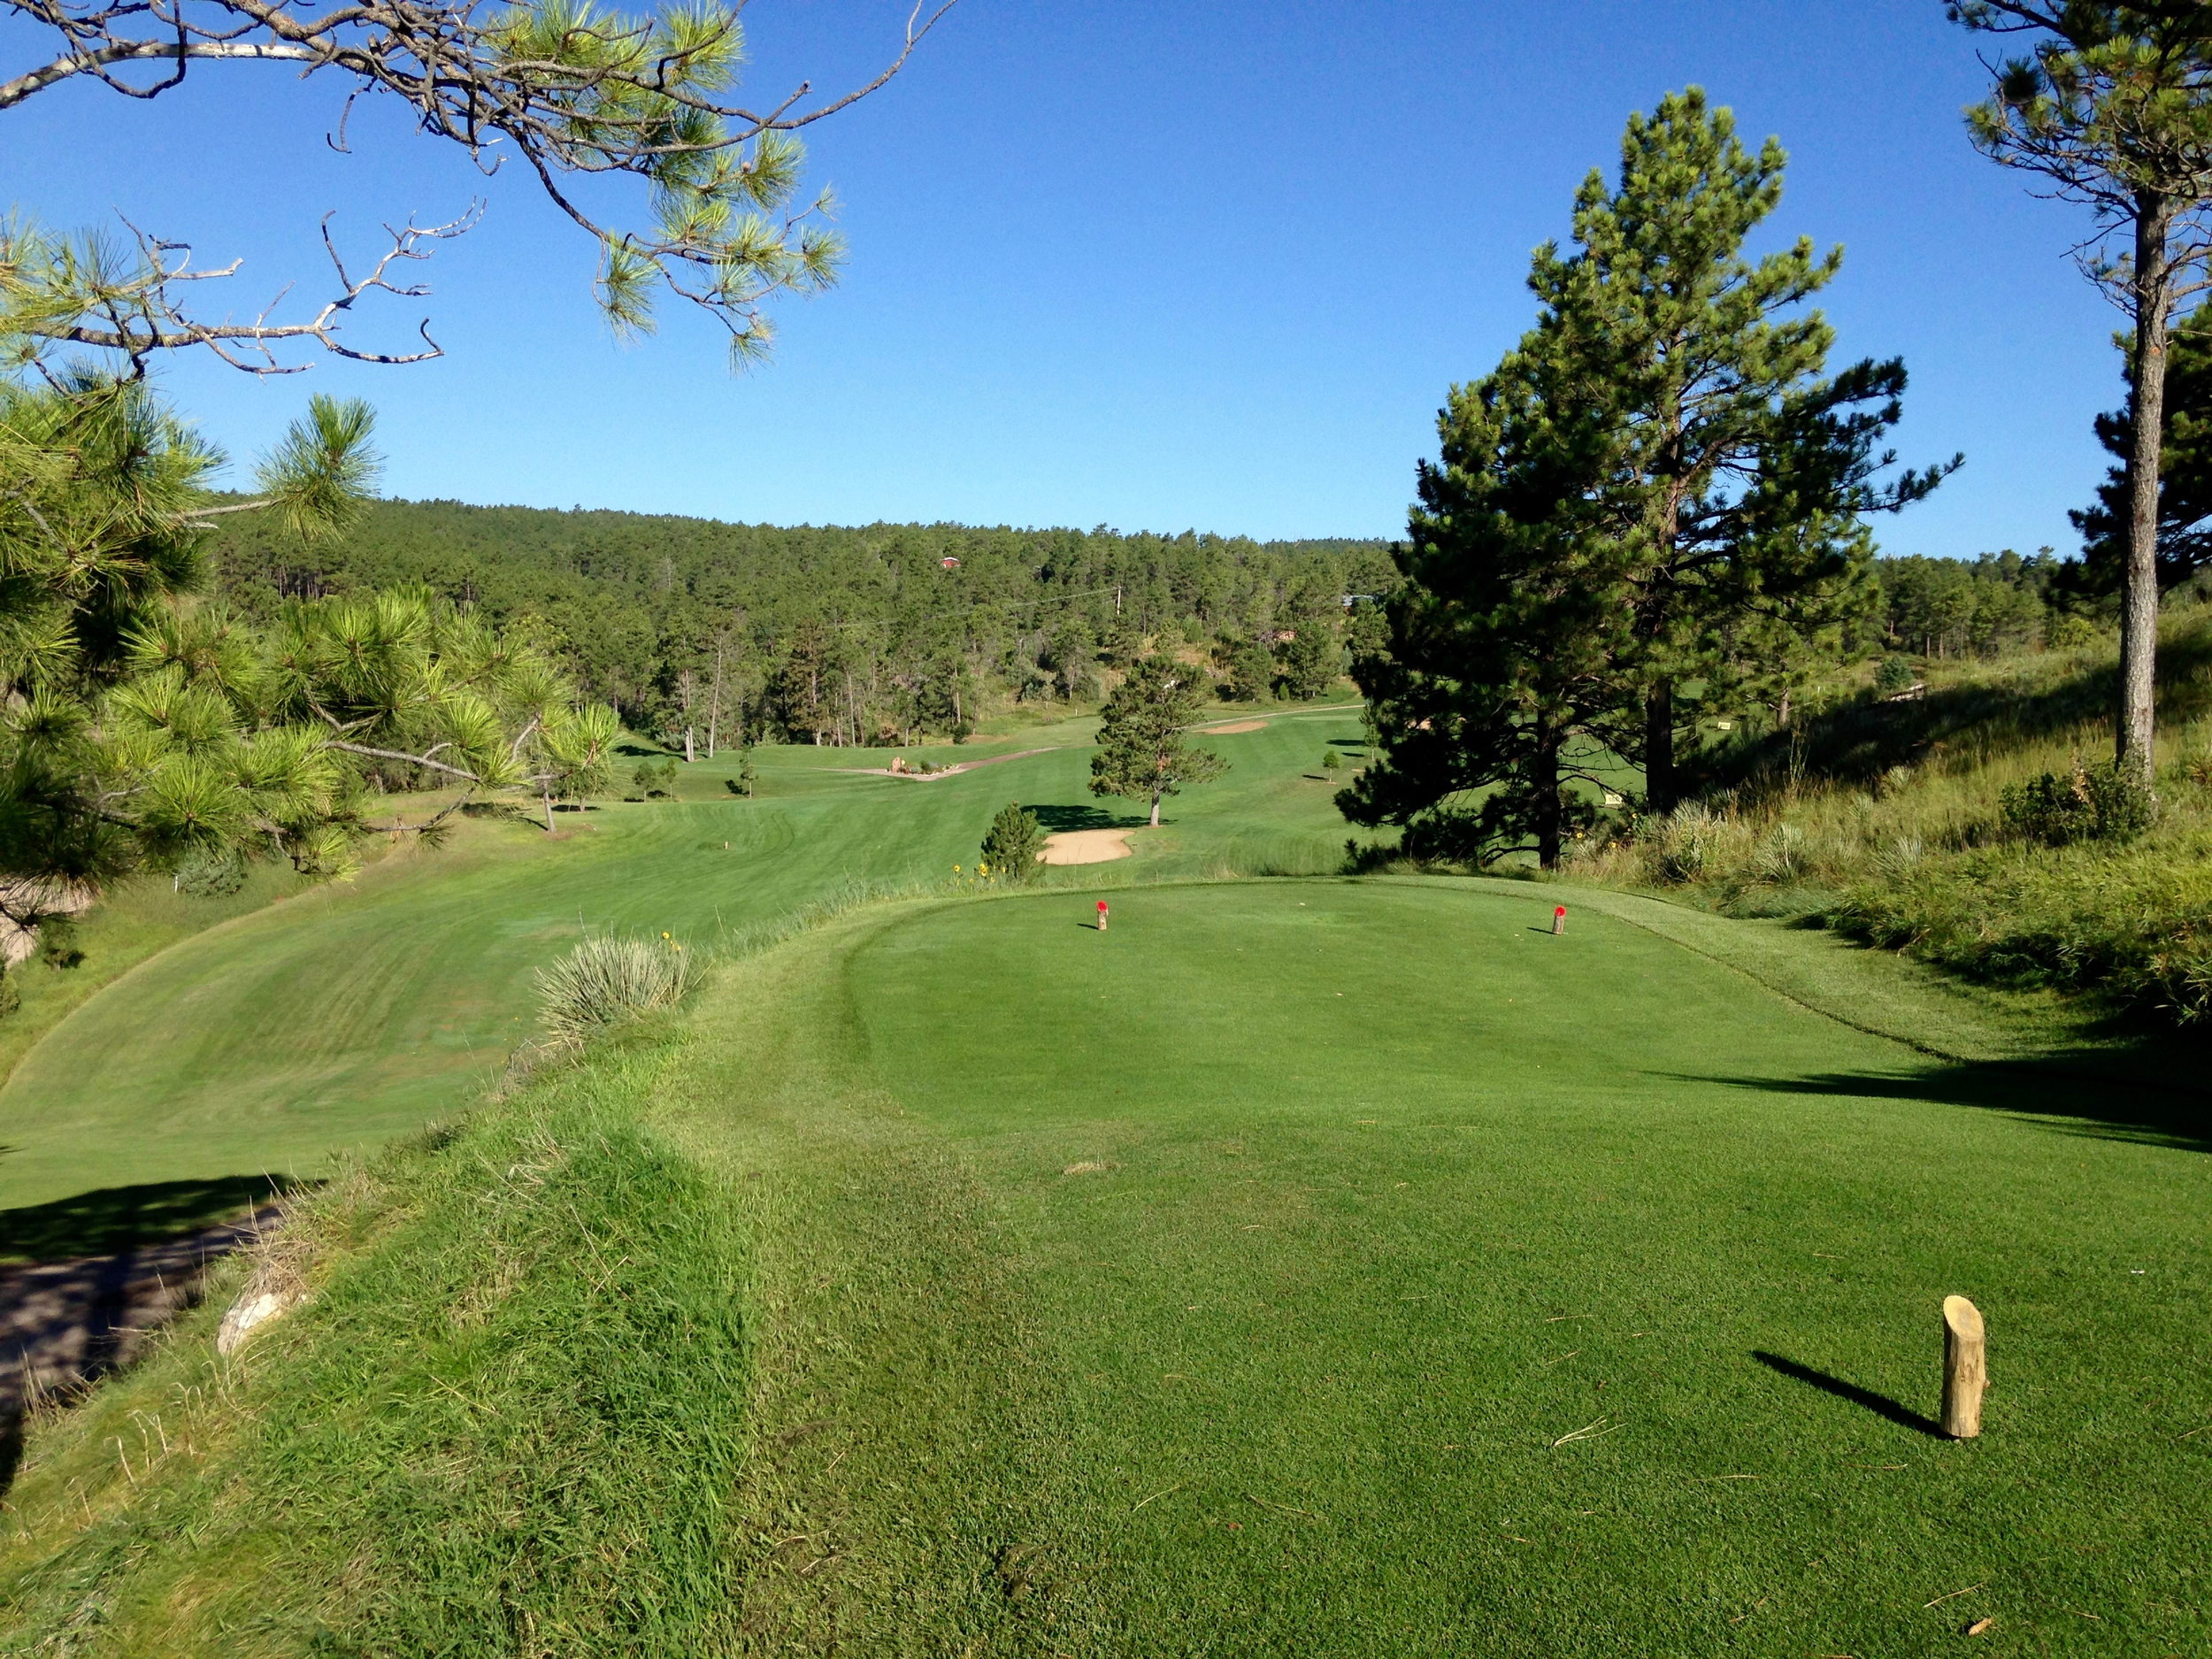 Southern hills golf course hot springs sd img0743g sciox Image collections